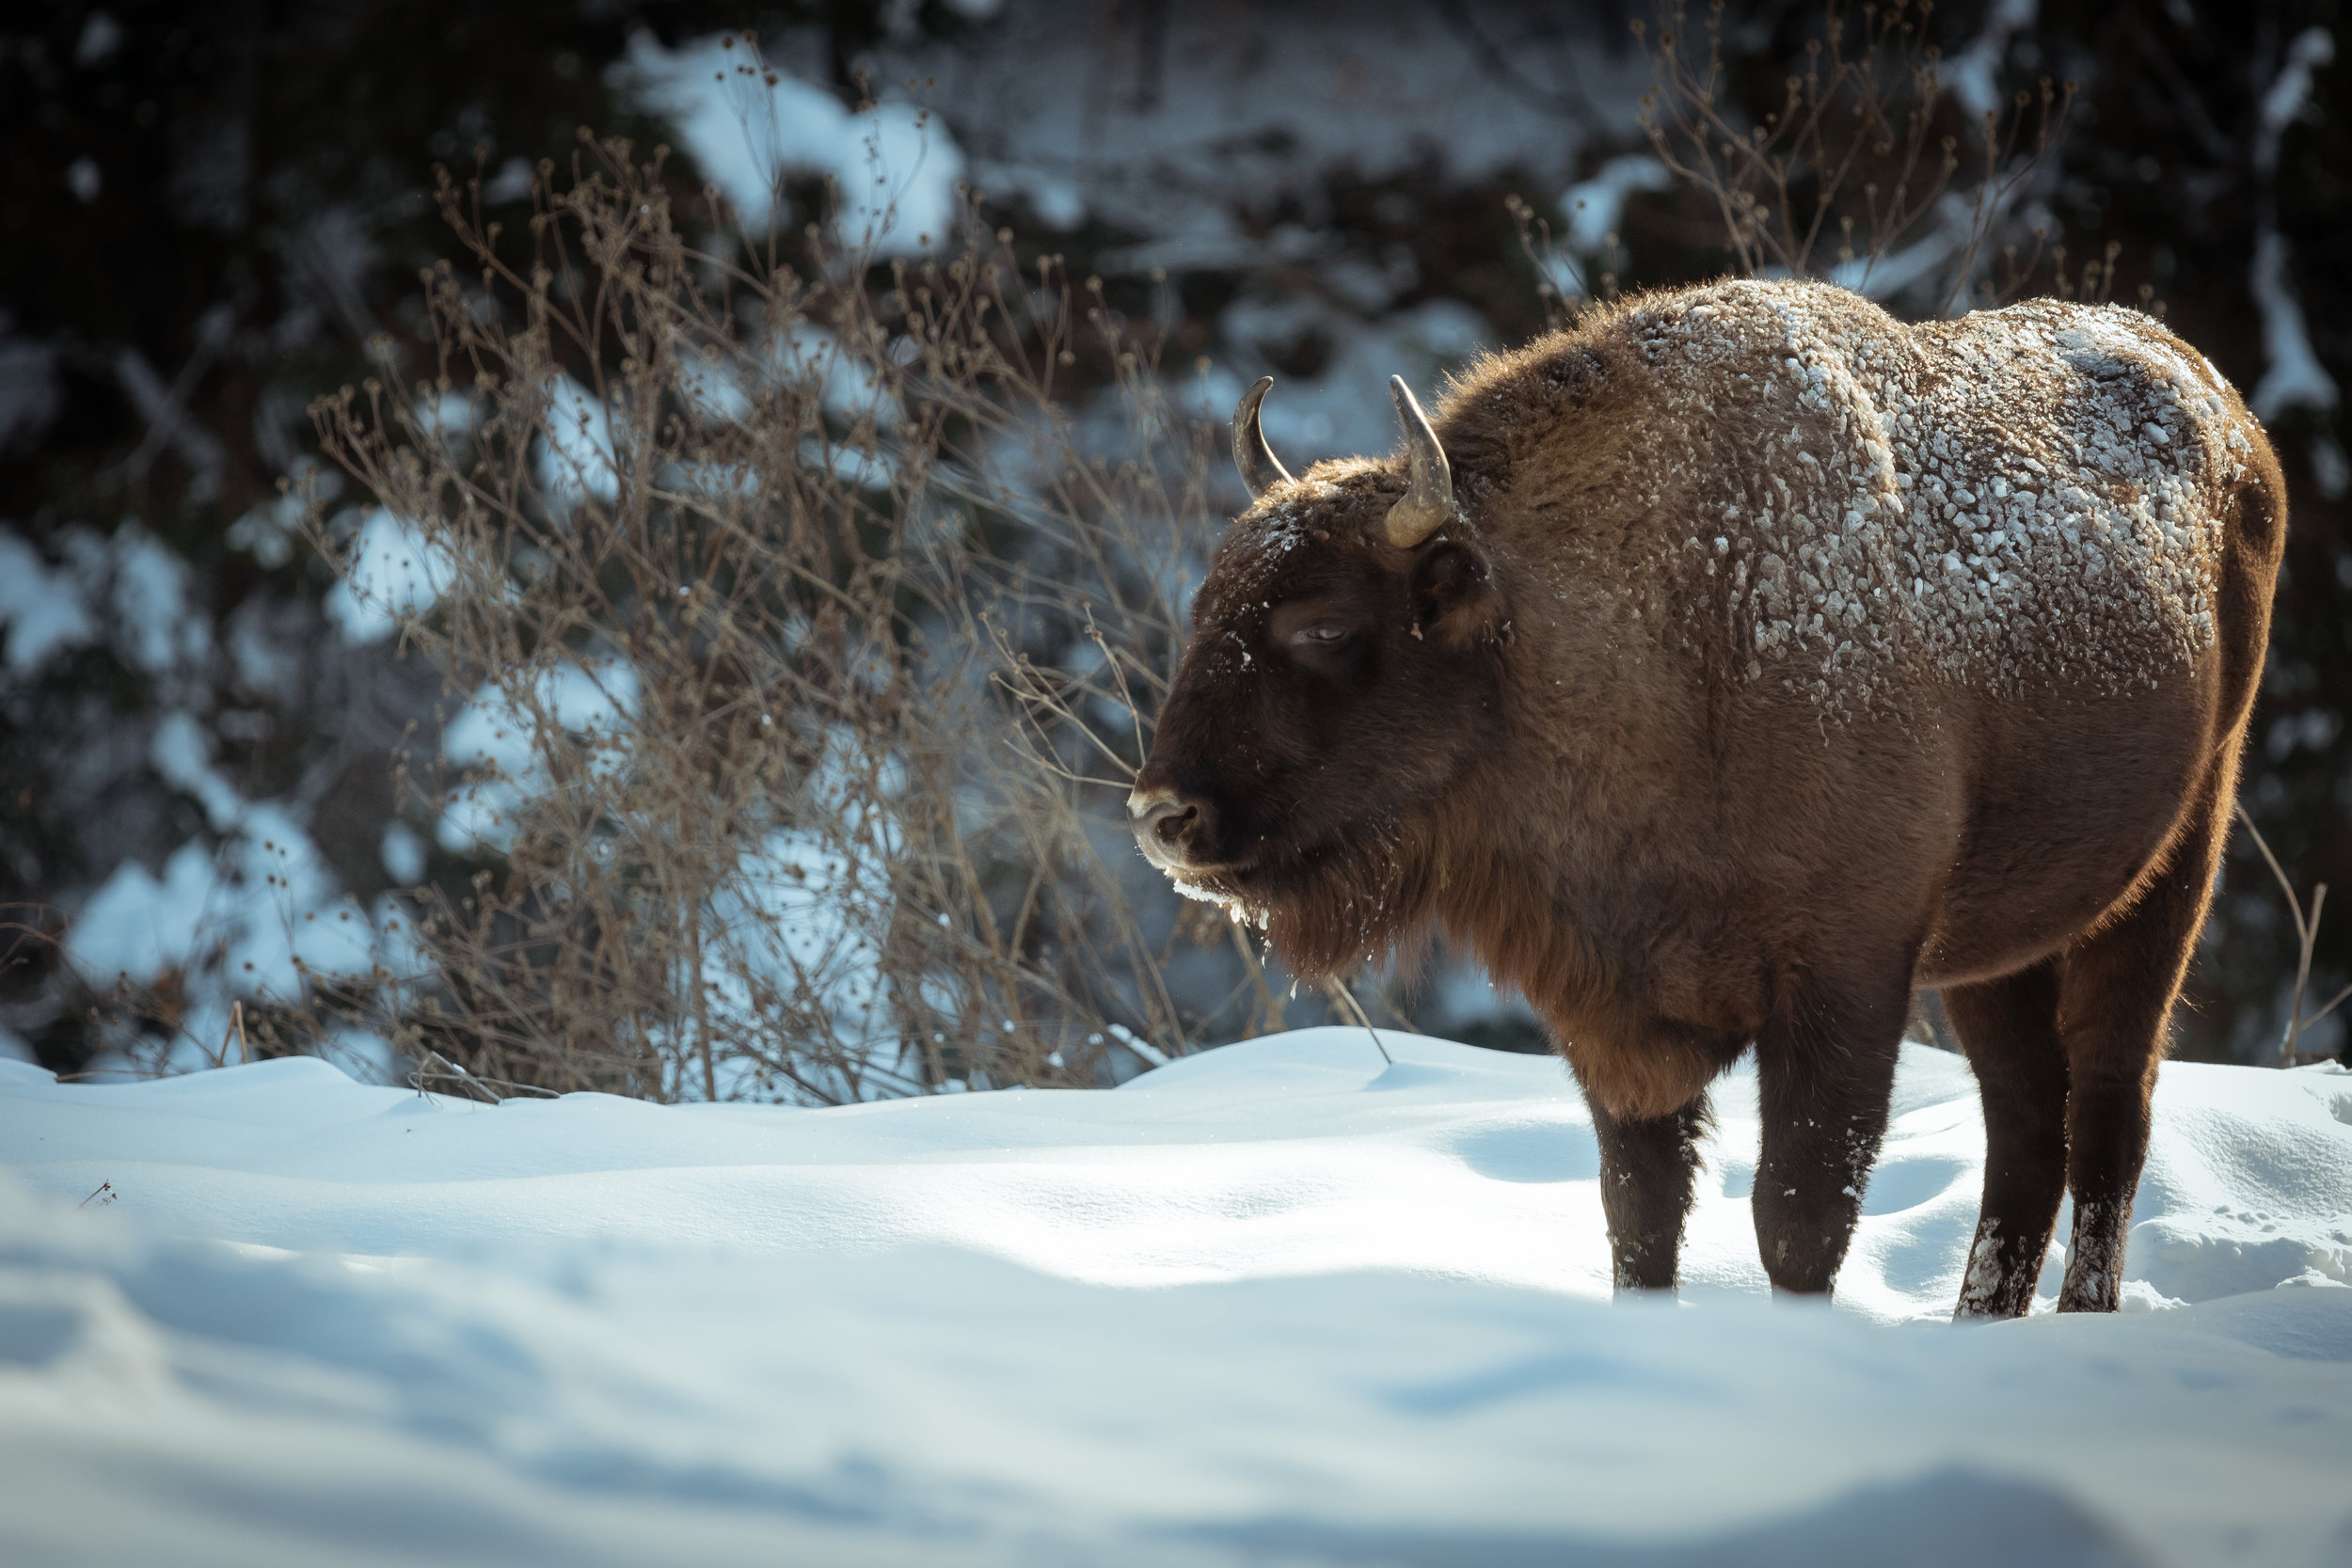 Bison roaming freely in NE Romania - January 2019